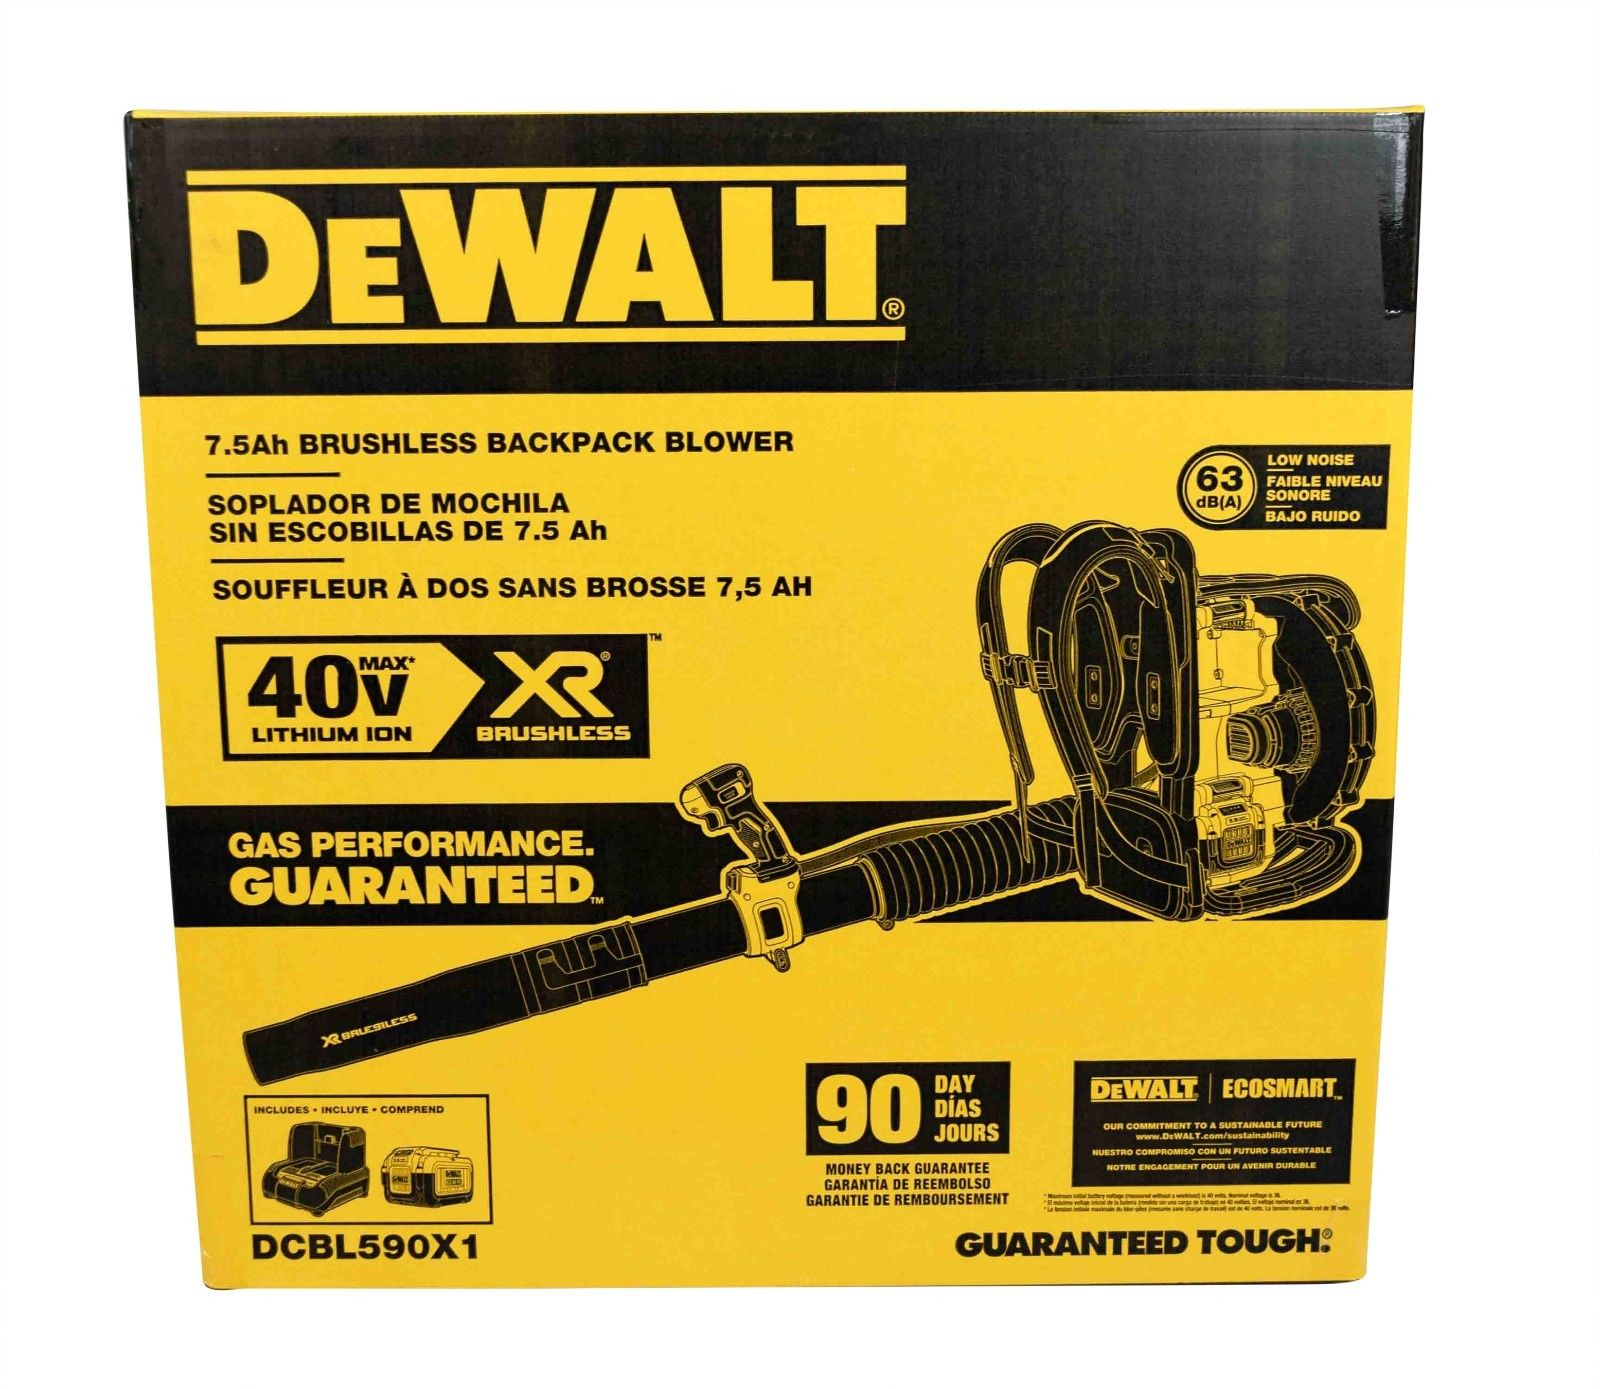 Dewalt-Dcbl590x1-40v-Max-7.5-Ah-Lithium-Ion-Xr-Brushless-Backpack-Blower-image-11